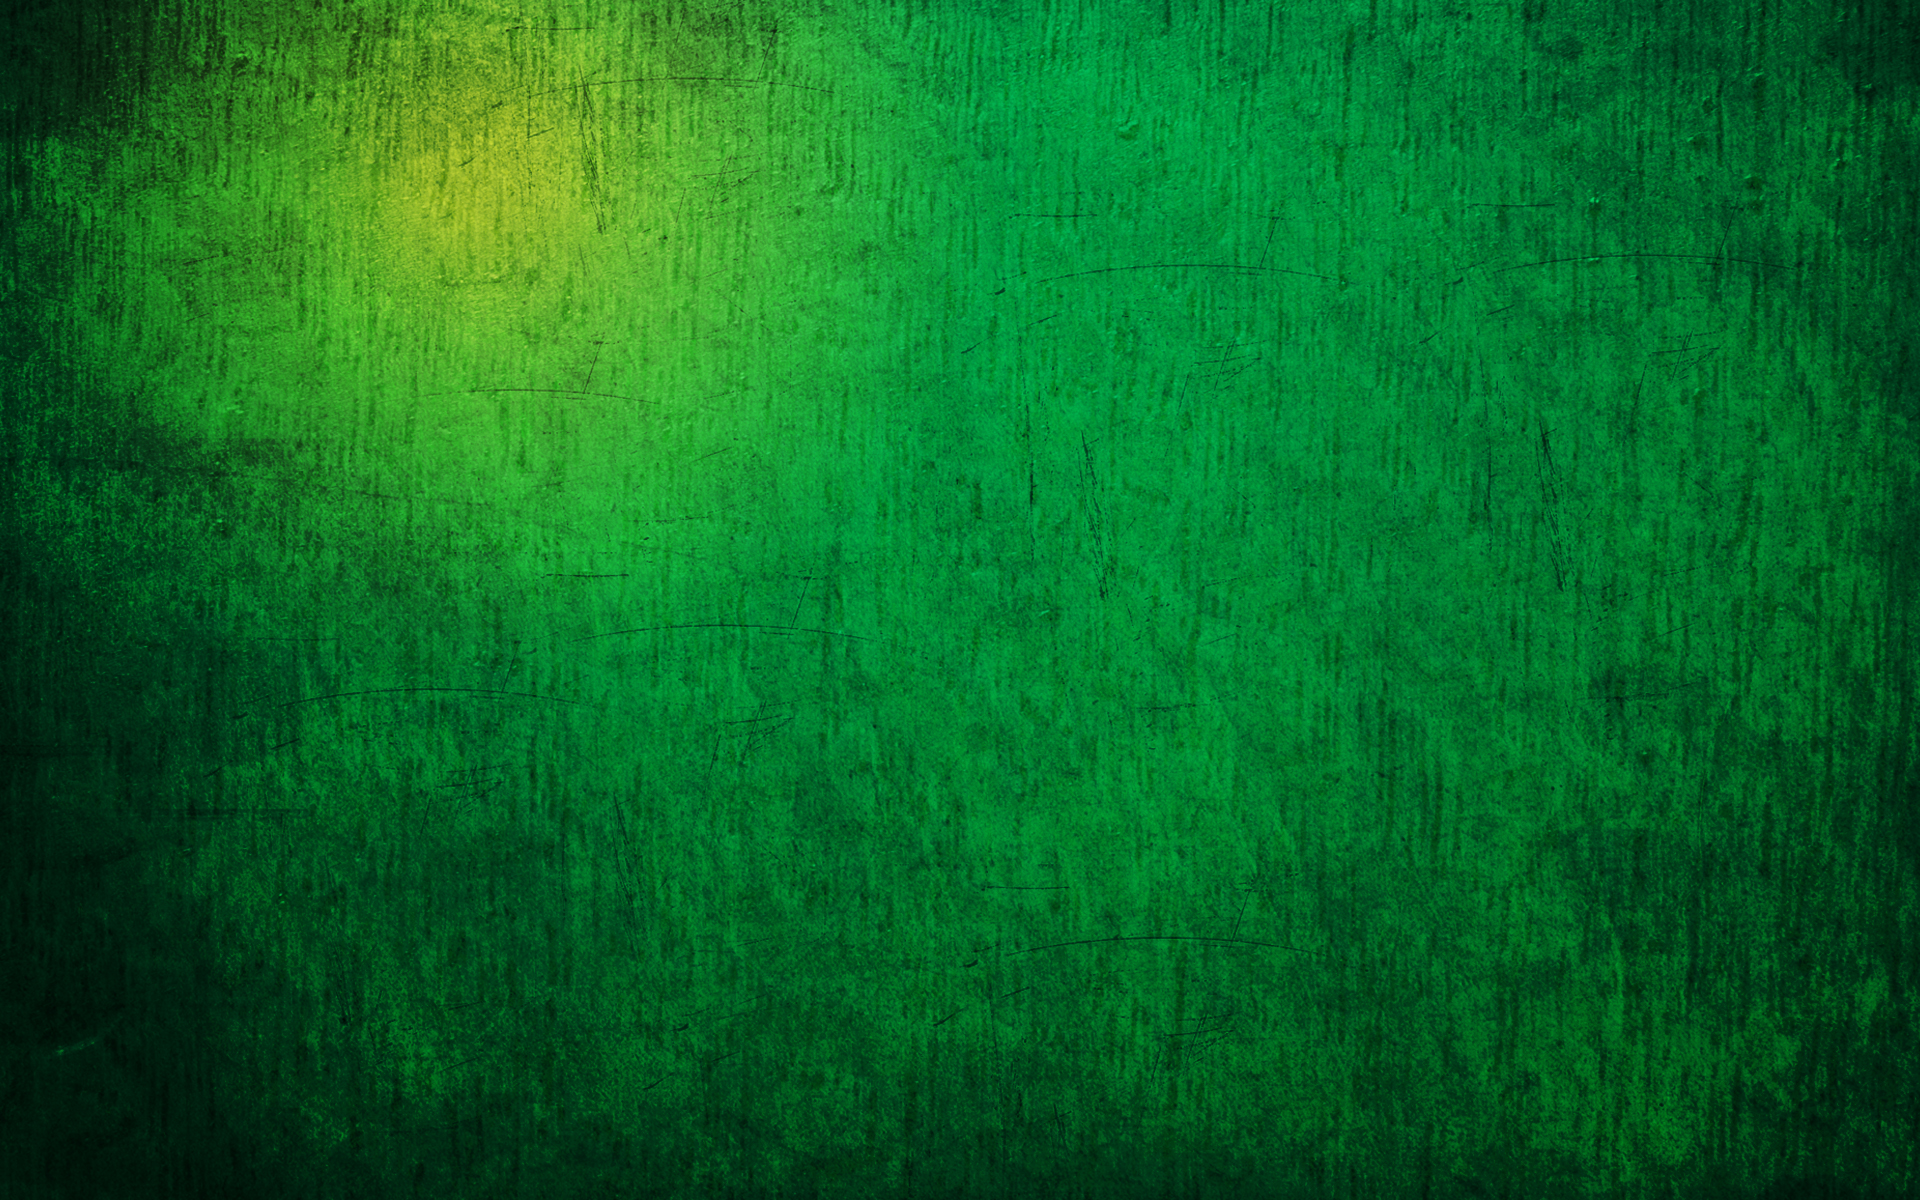 Green-Background-Abstract-Wallpaper-HD